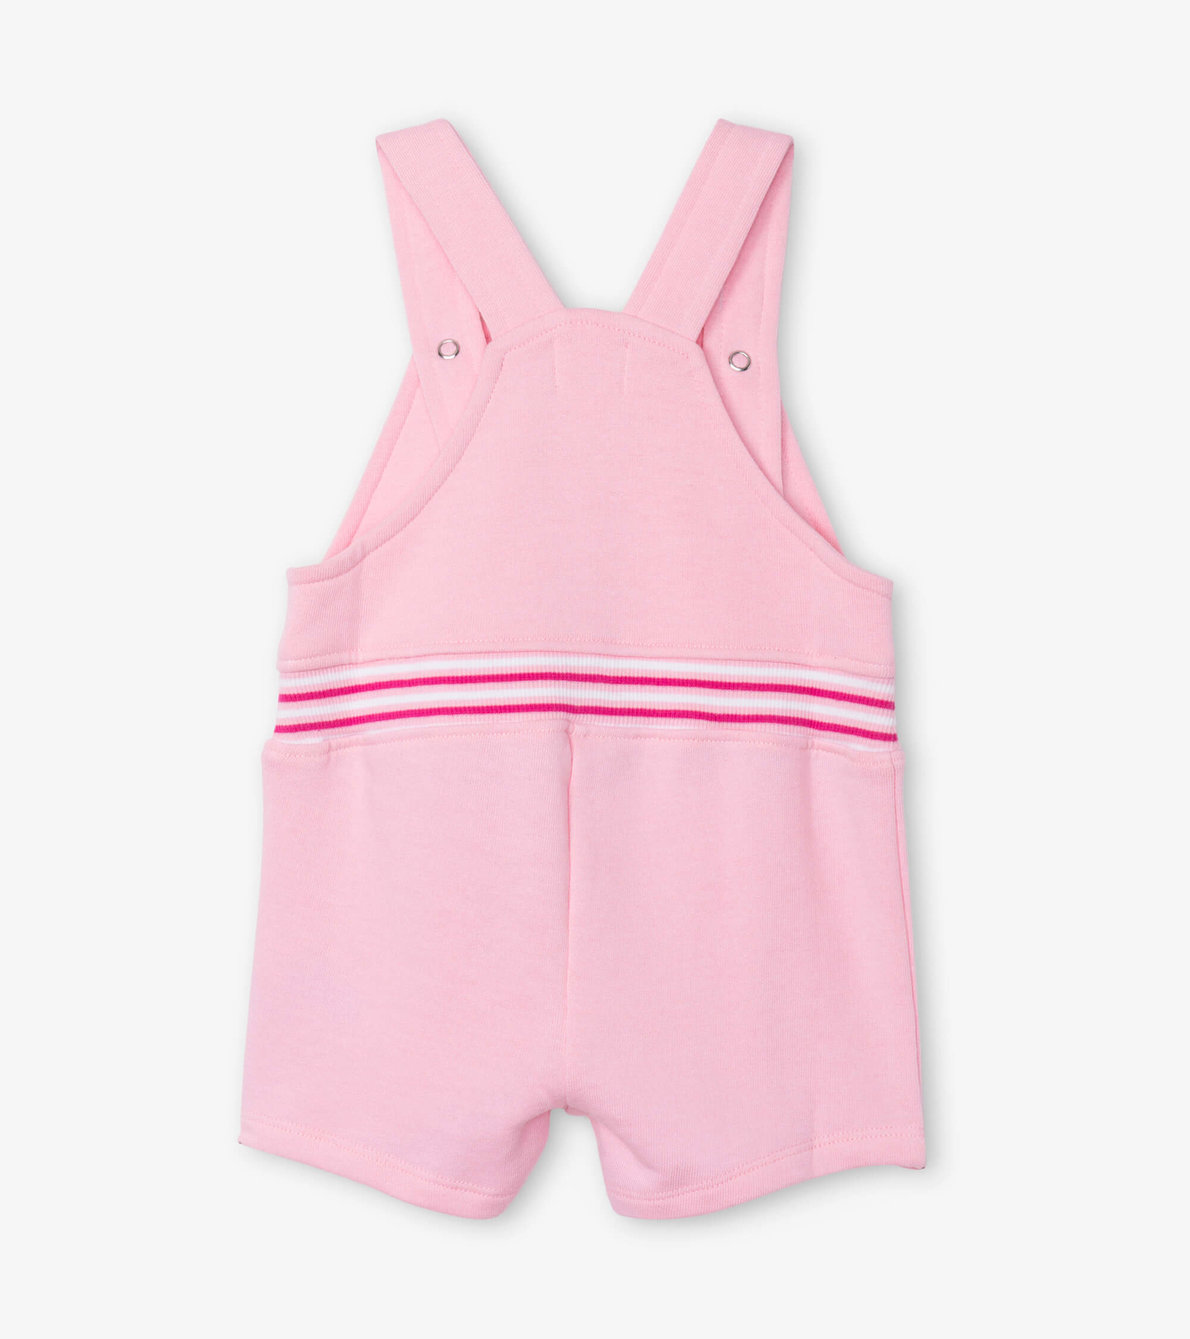 View larger image of Candy Pink Baby Overalls